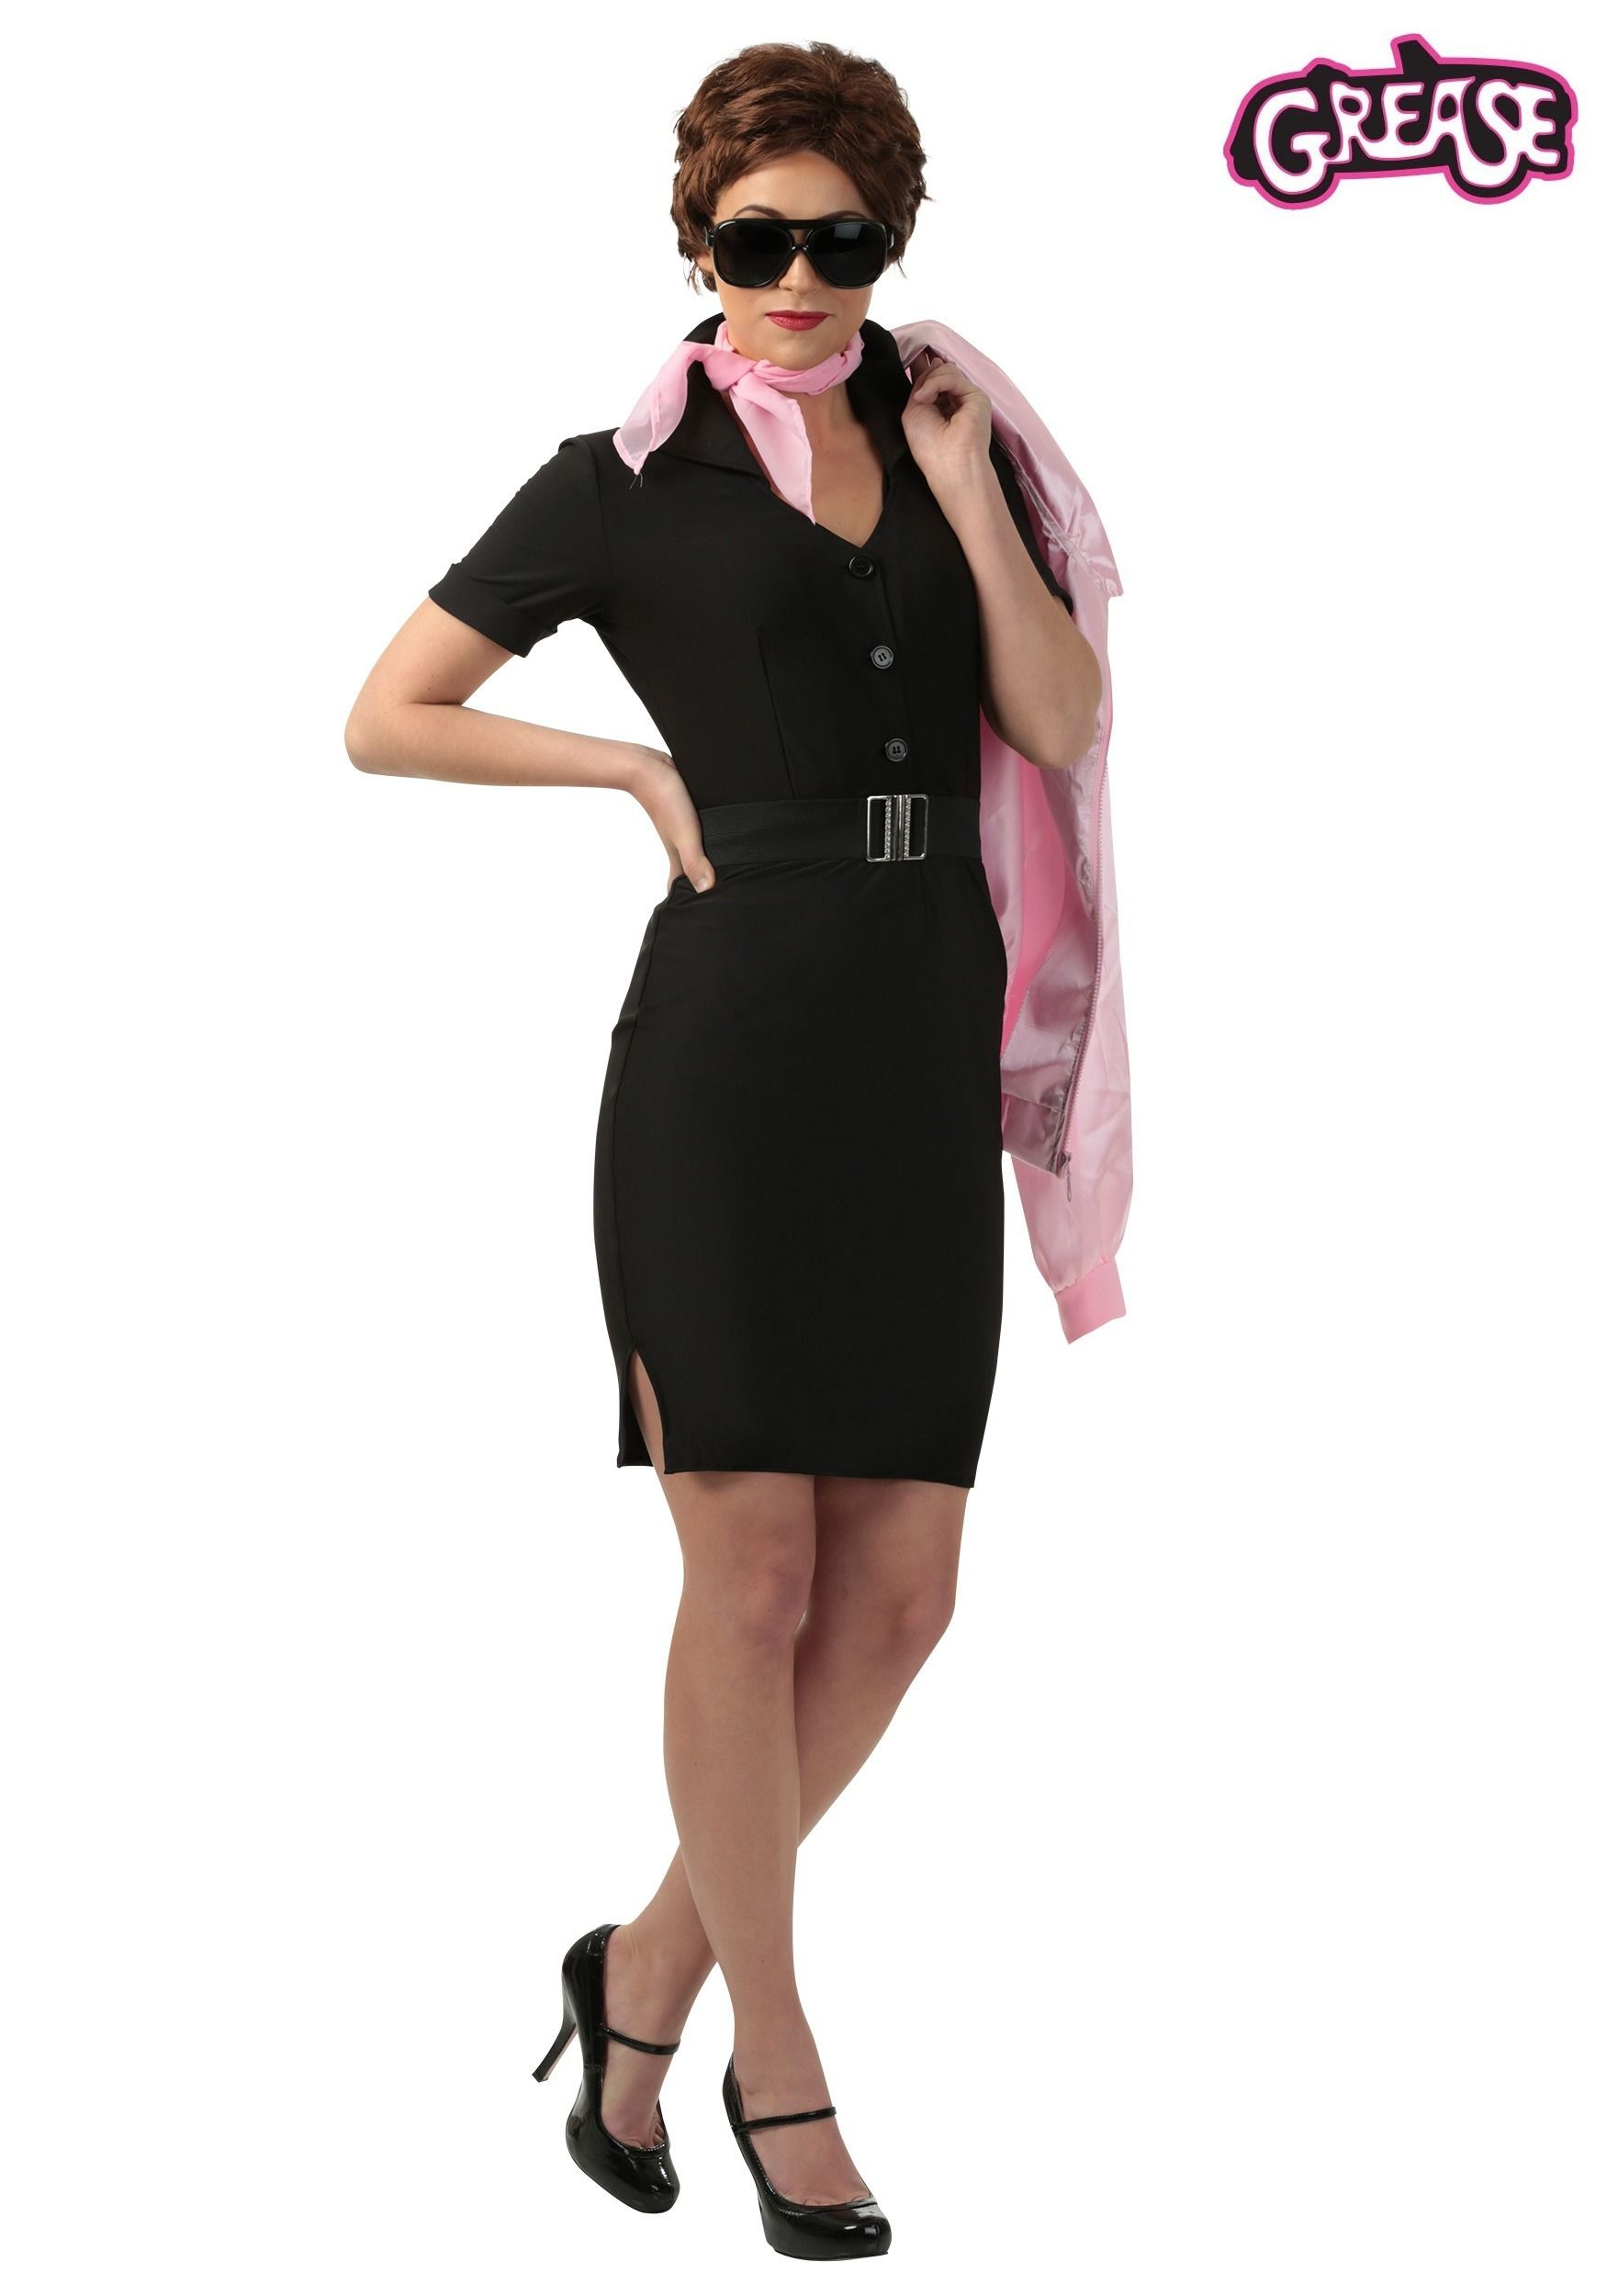 Grease Plus Size Rizzo Costume | Halloween | Pinterest | Costumes ...